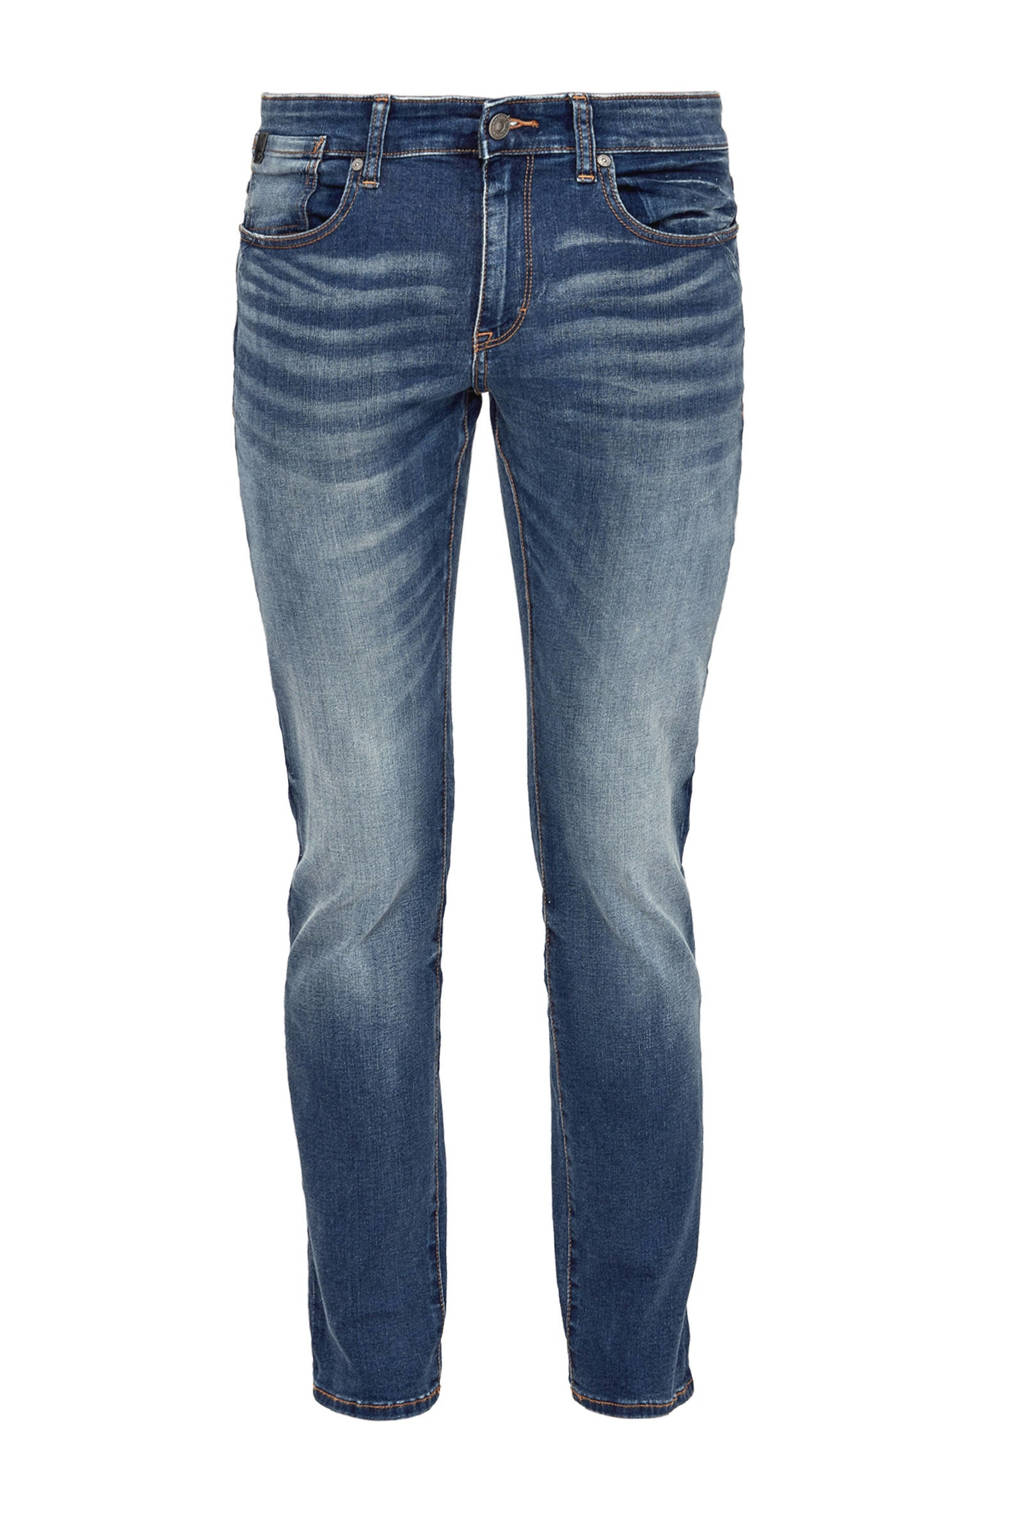 s.Oliver skinny jeans, Blauw